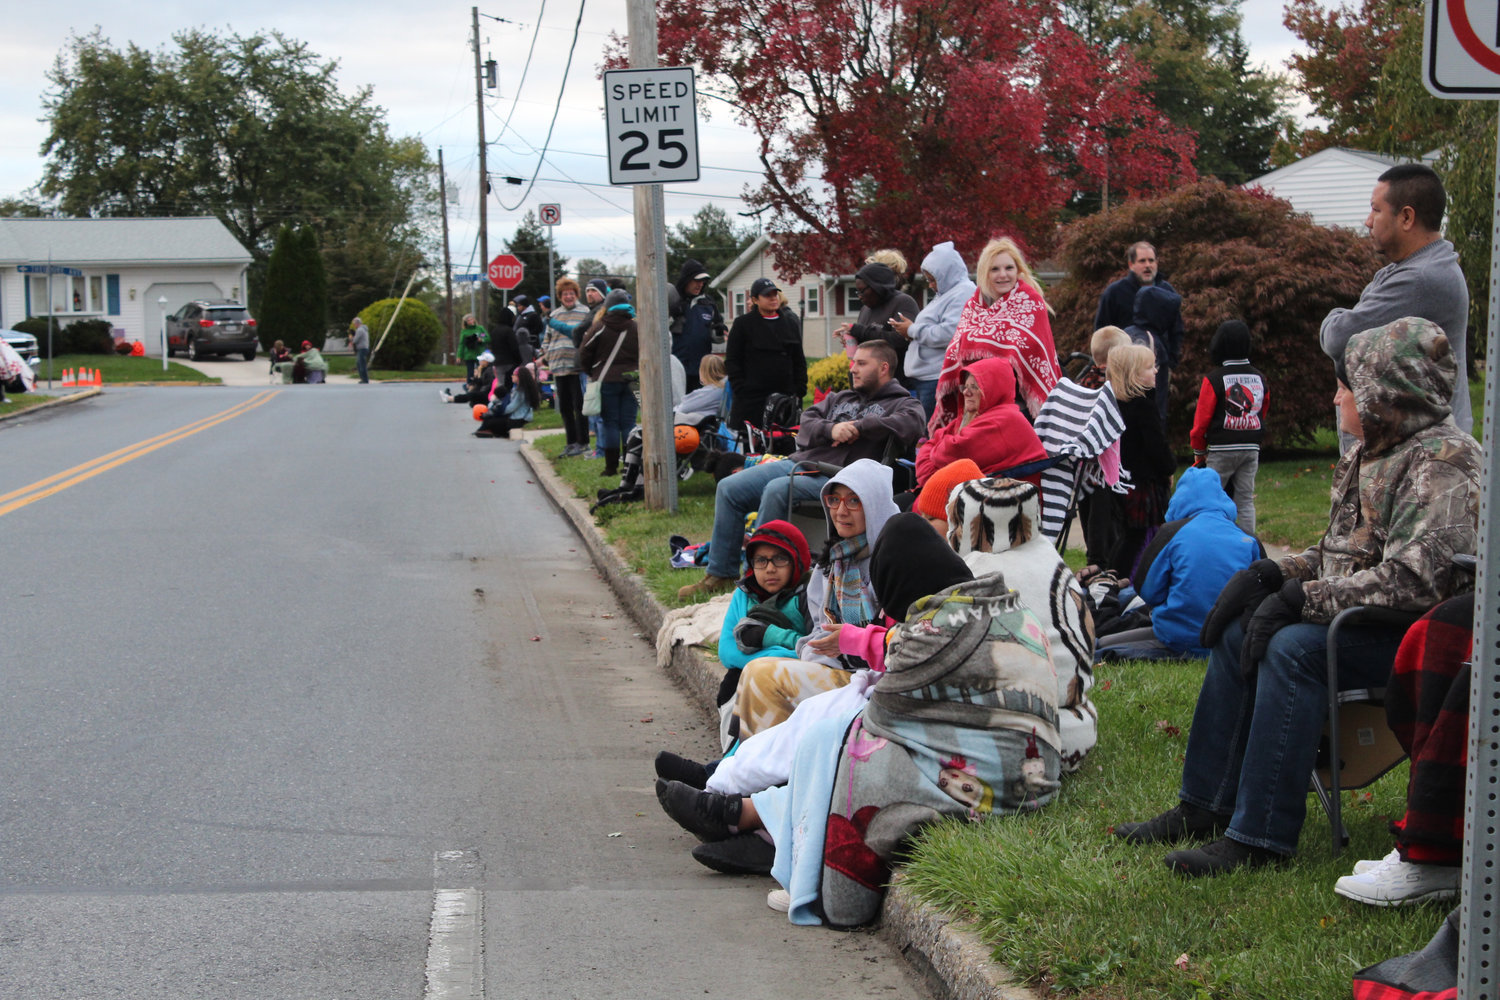 People gather along South Nissley Drive during the Lower Swatara Halloween Parade on Oct. 17.